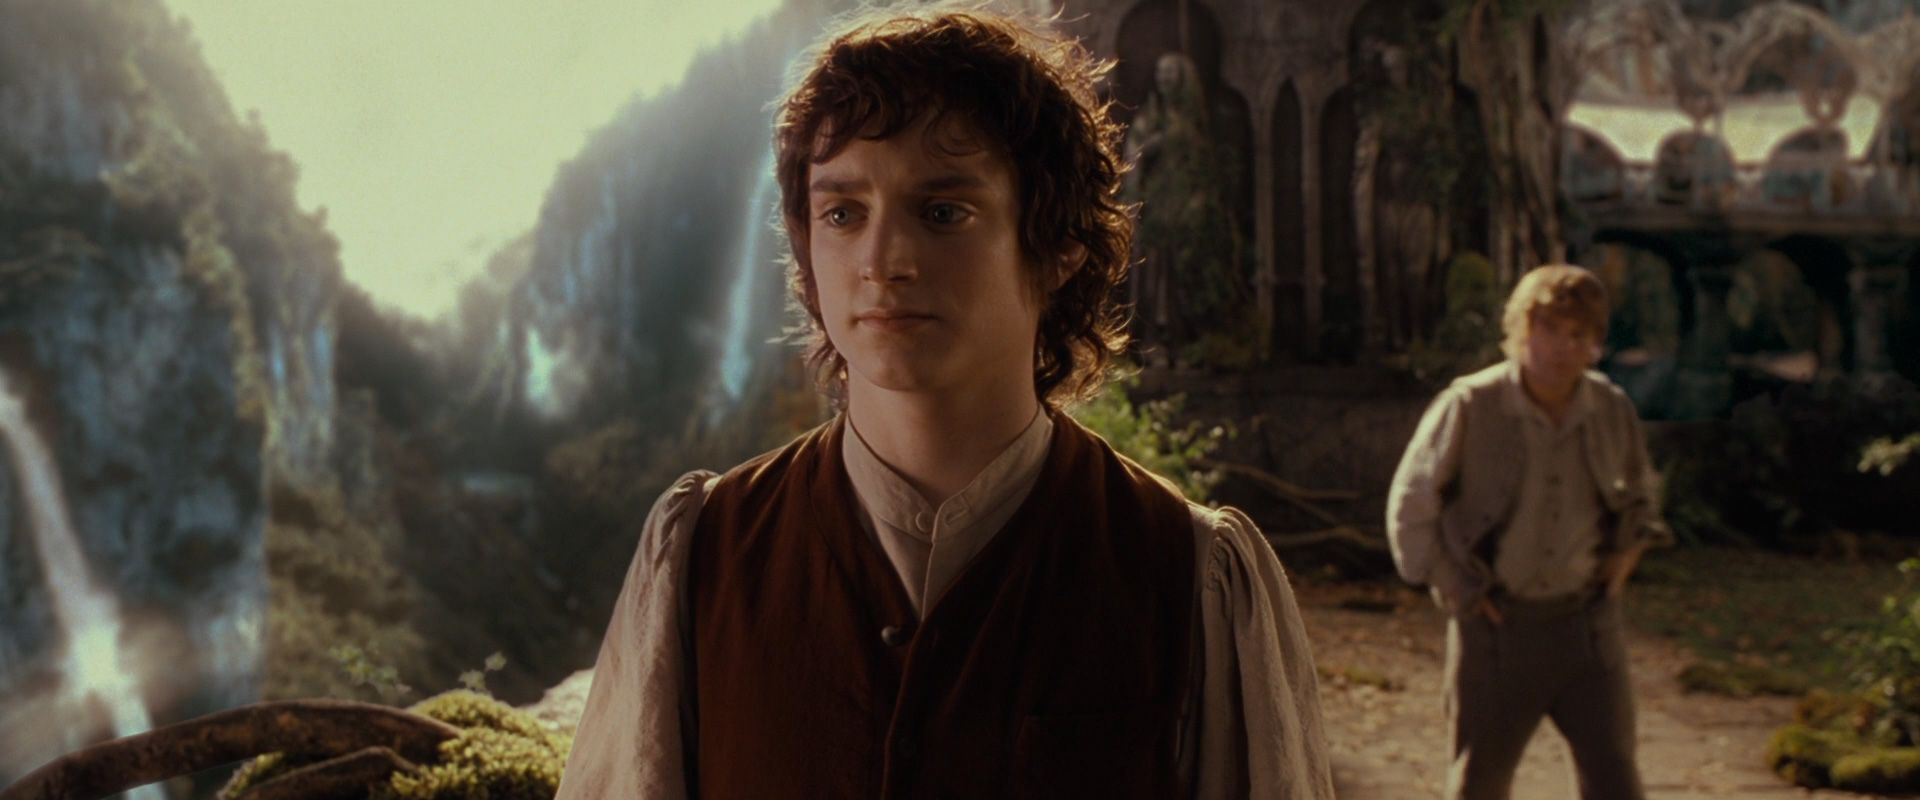 to elijah celebs baggins the wood as frodo fellowship rings lord roles ring around in of movies